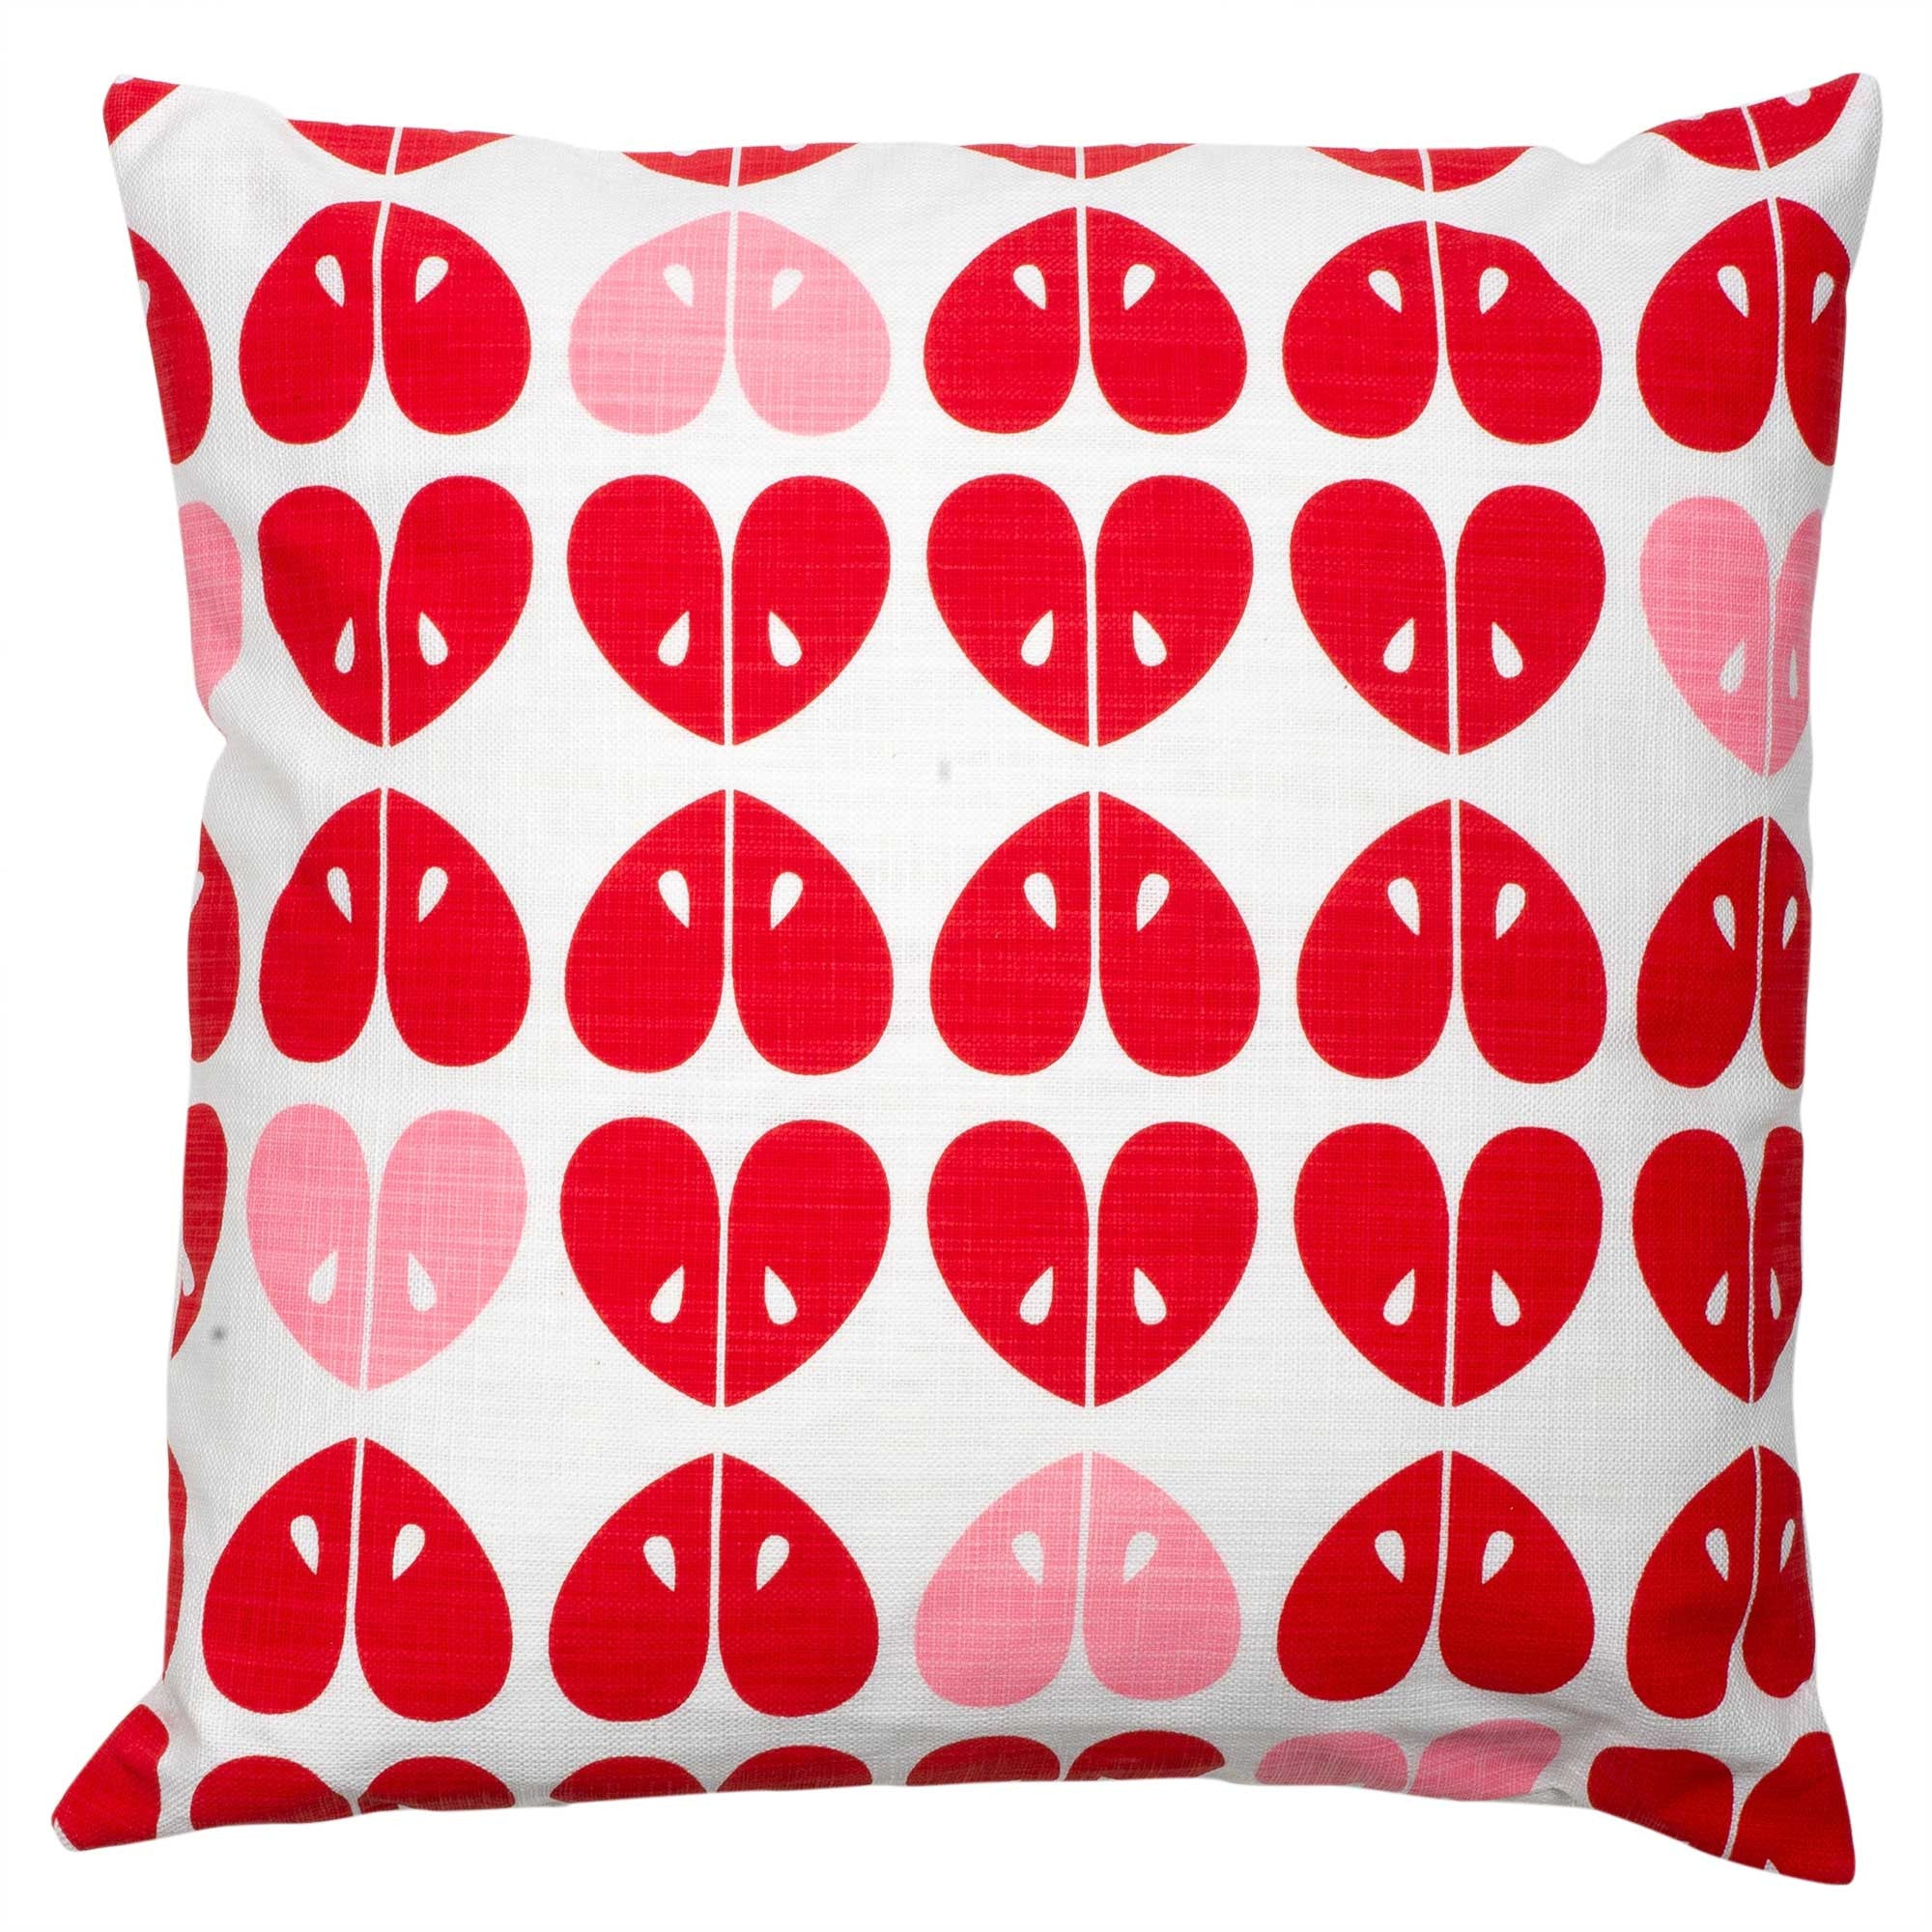 Coral Apples mini cushion